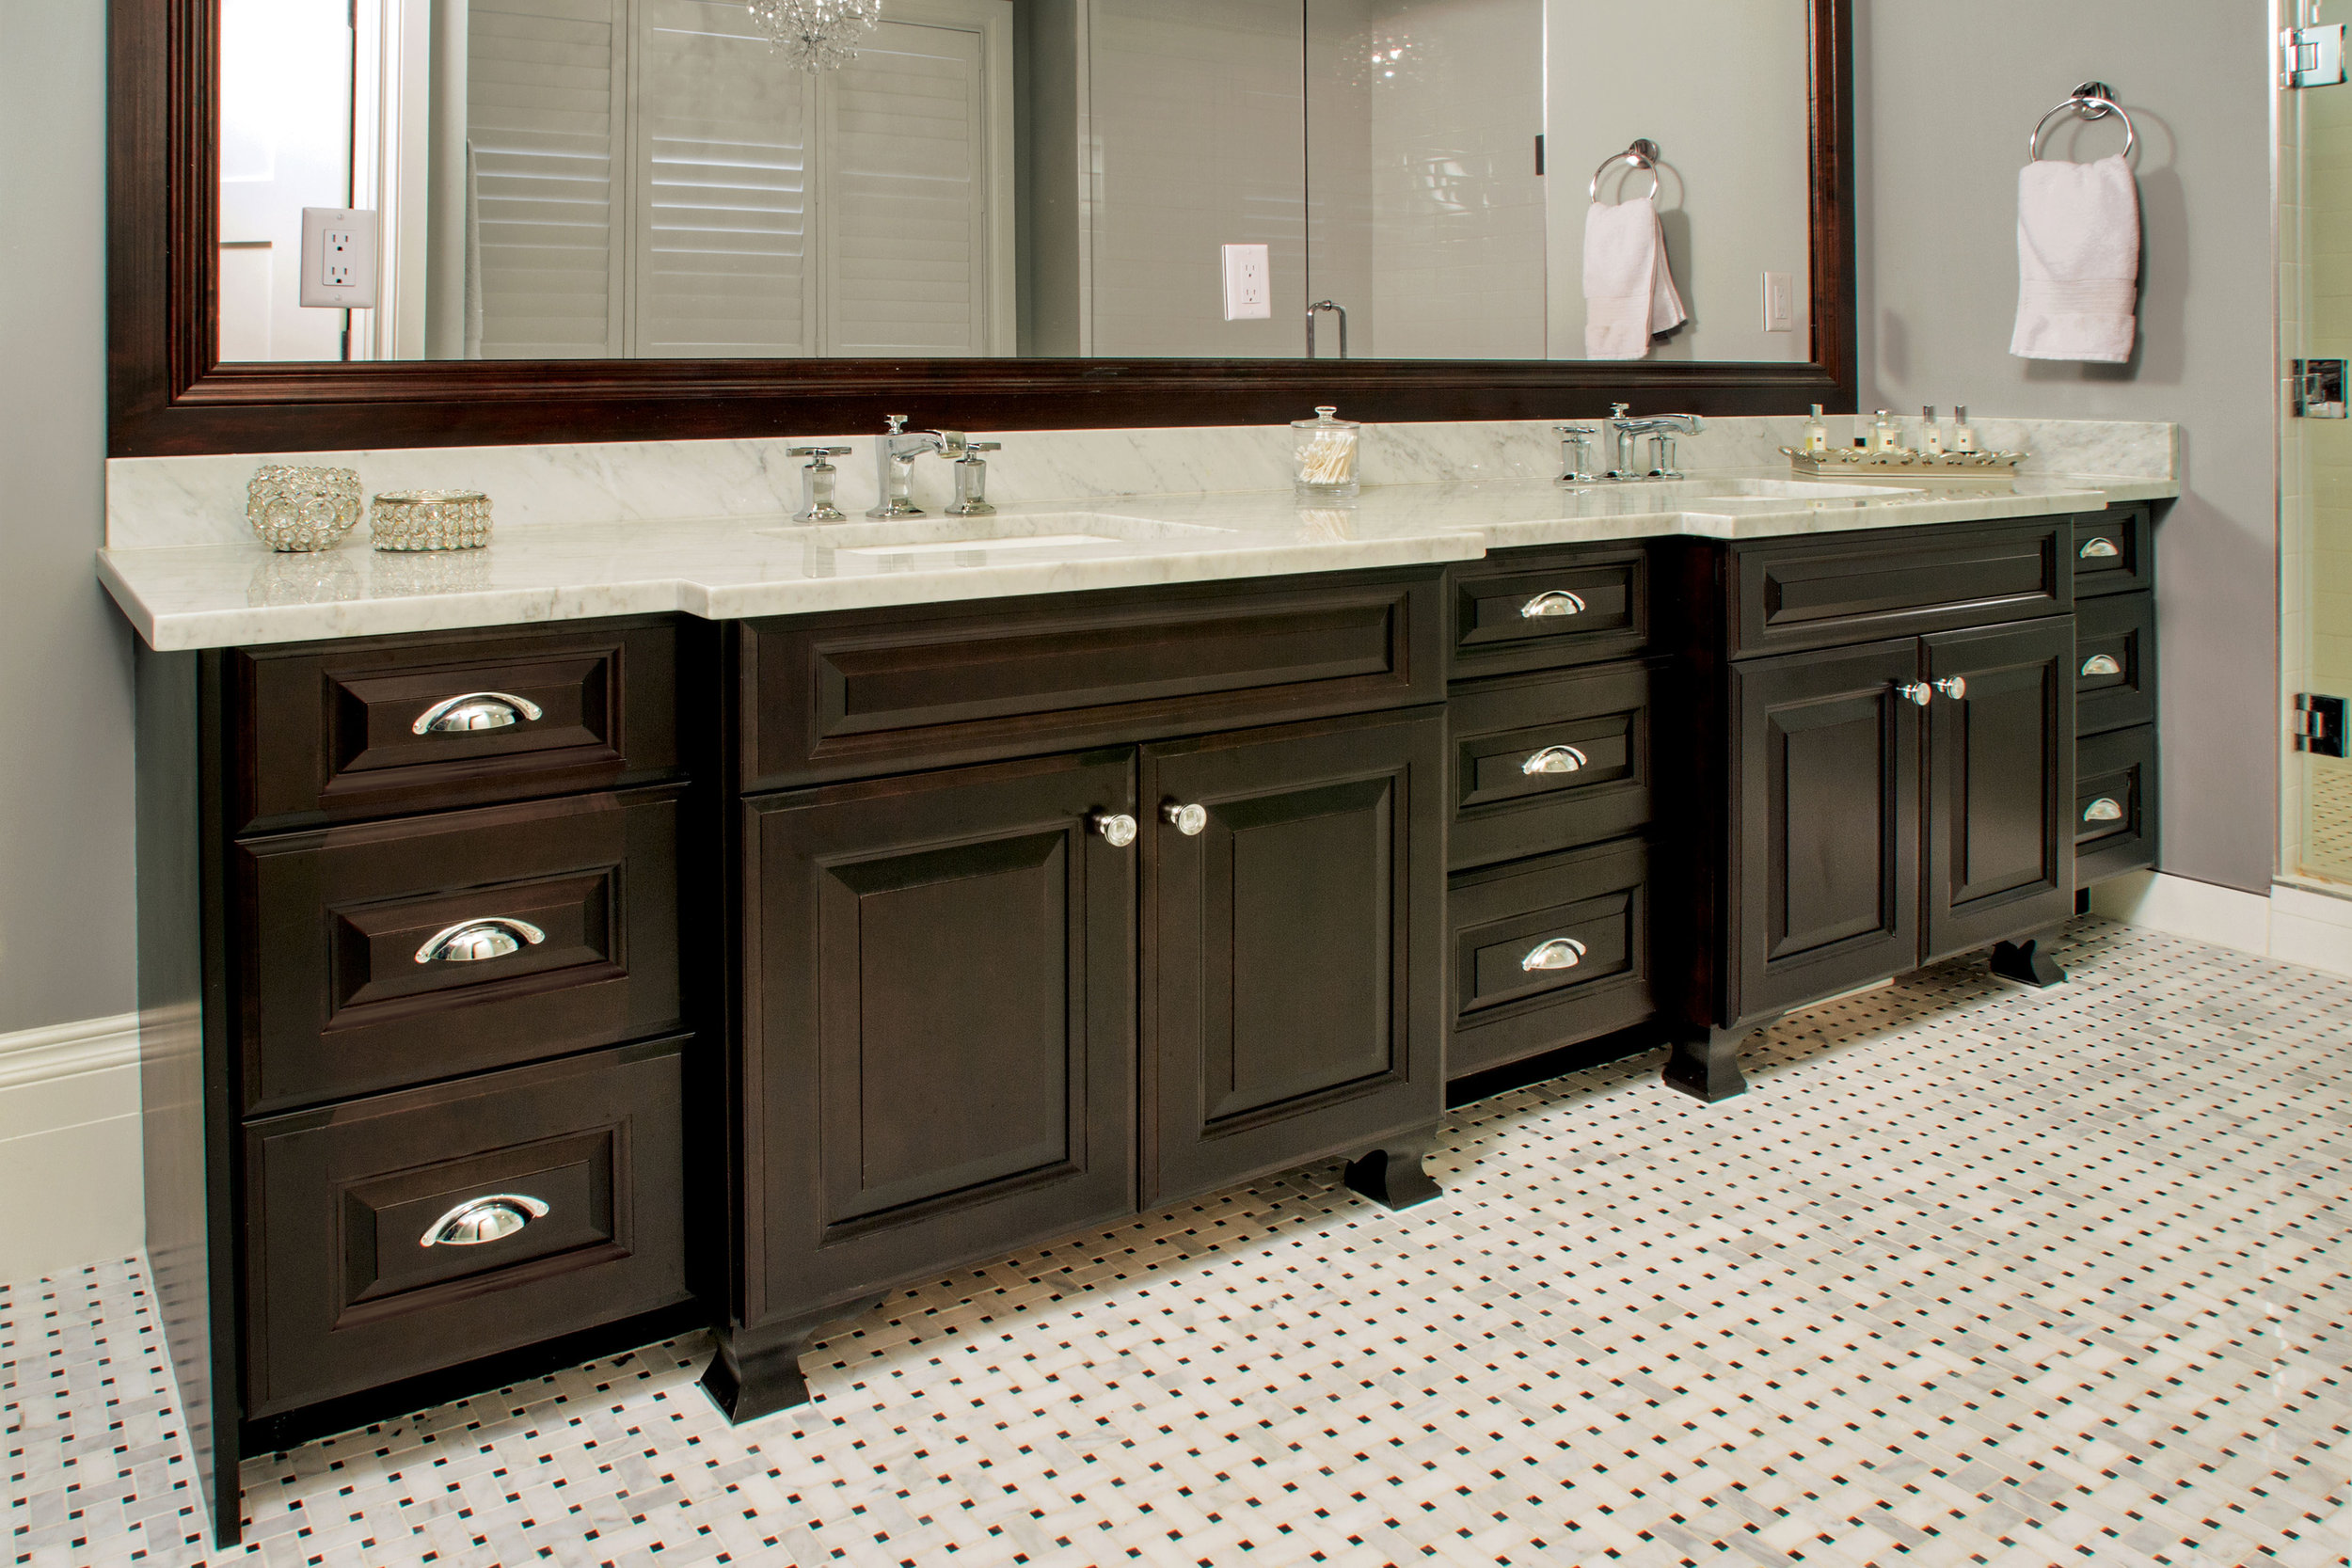 Storage - Forgetting about storage is one of the biggest mistakes you can make. Imagine the amount of things we store in the bathroom that we use daily. Smart storage units should be one of the most important aspects in your design.